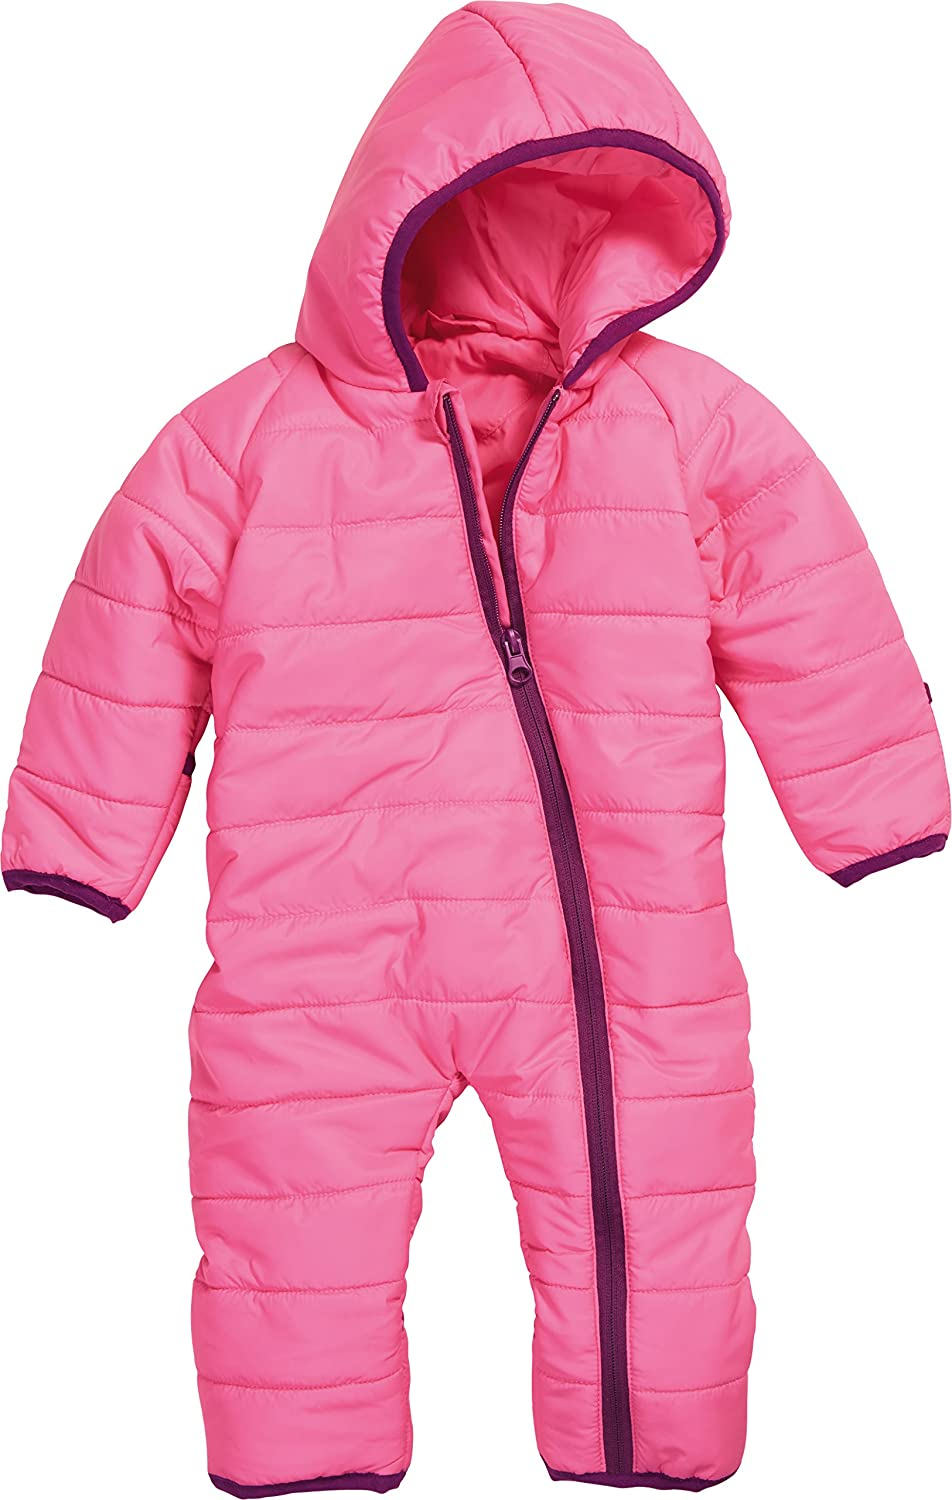 Playshoes Unisex Baby Jacke Stepp-Overall 431050